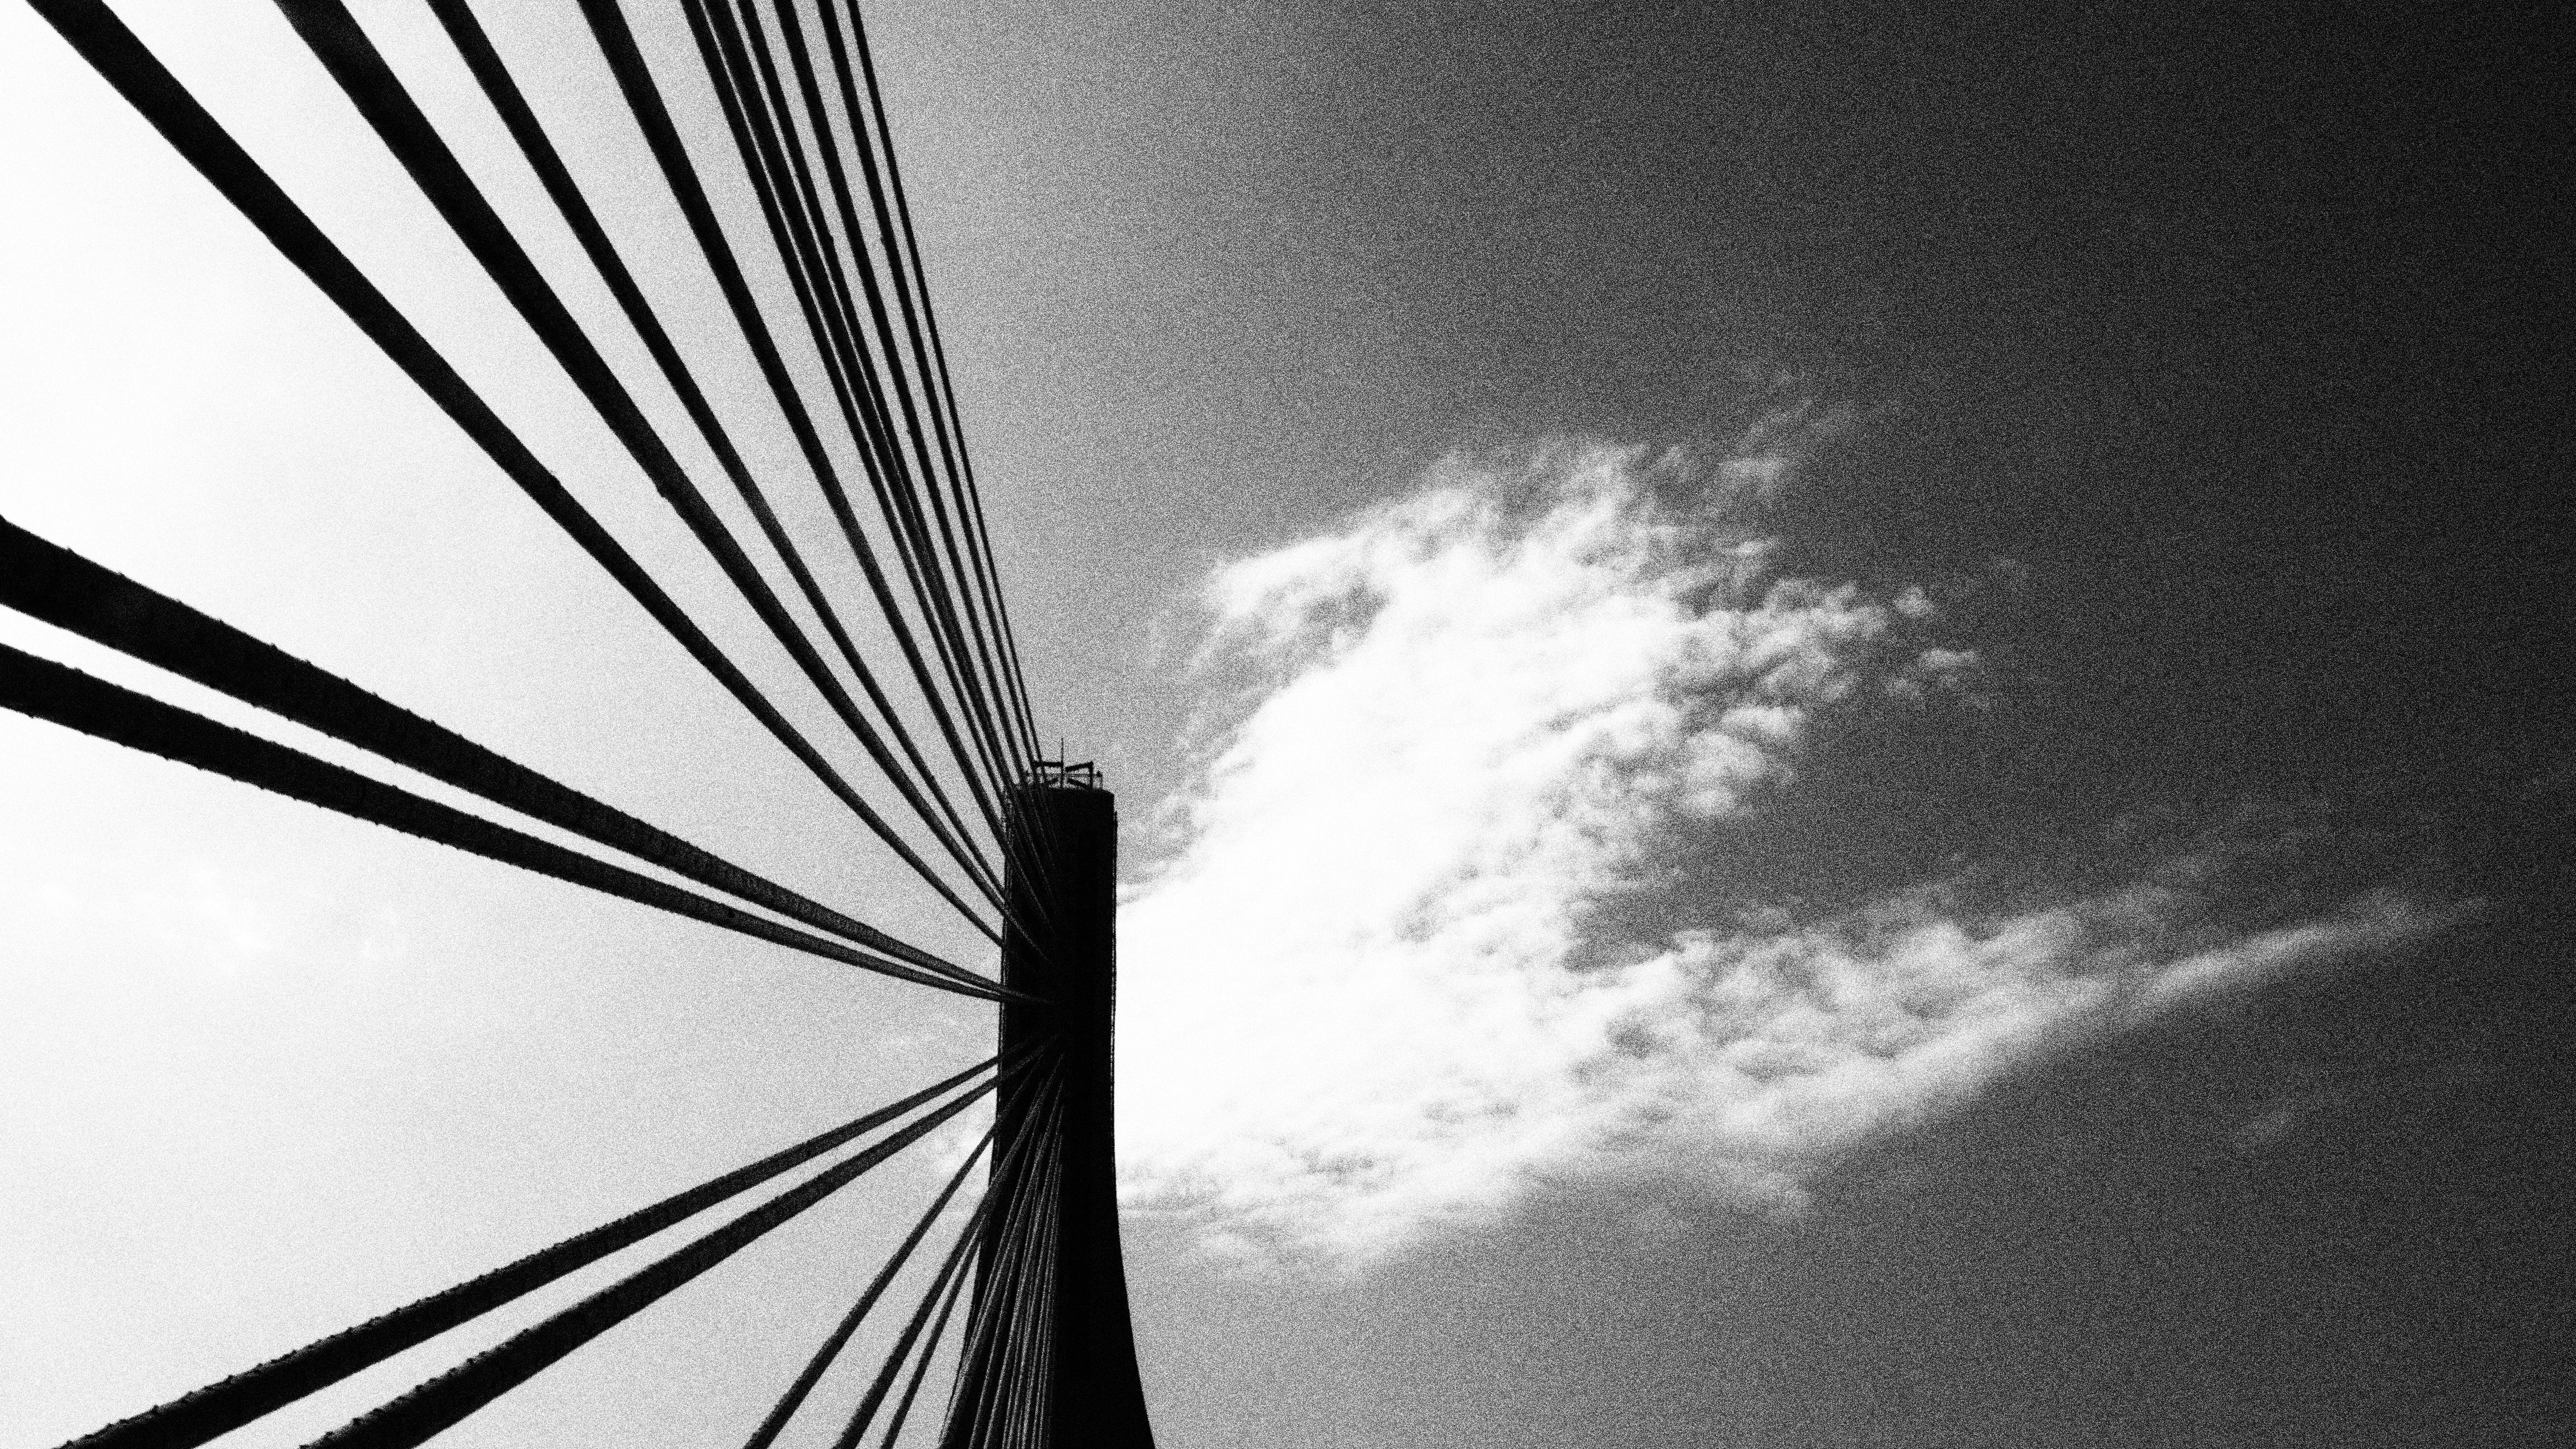 Black and white shot of steel bridge architecture from below with cloudy sky from below